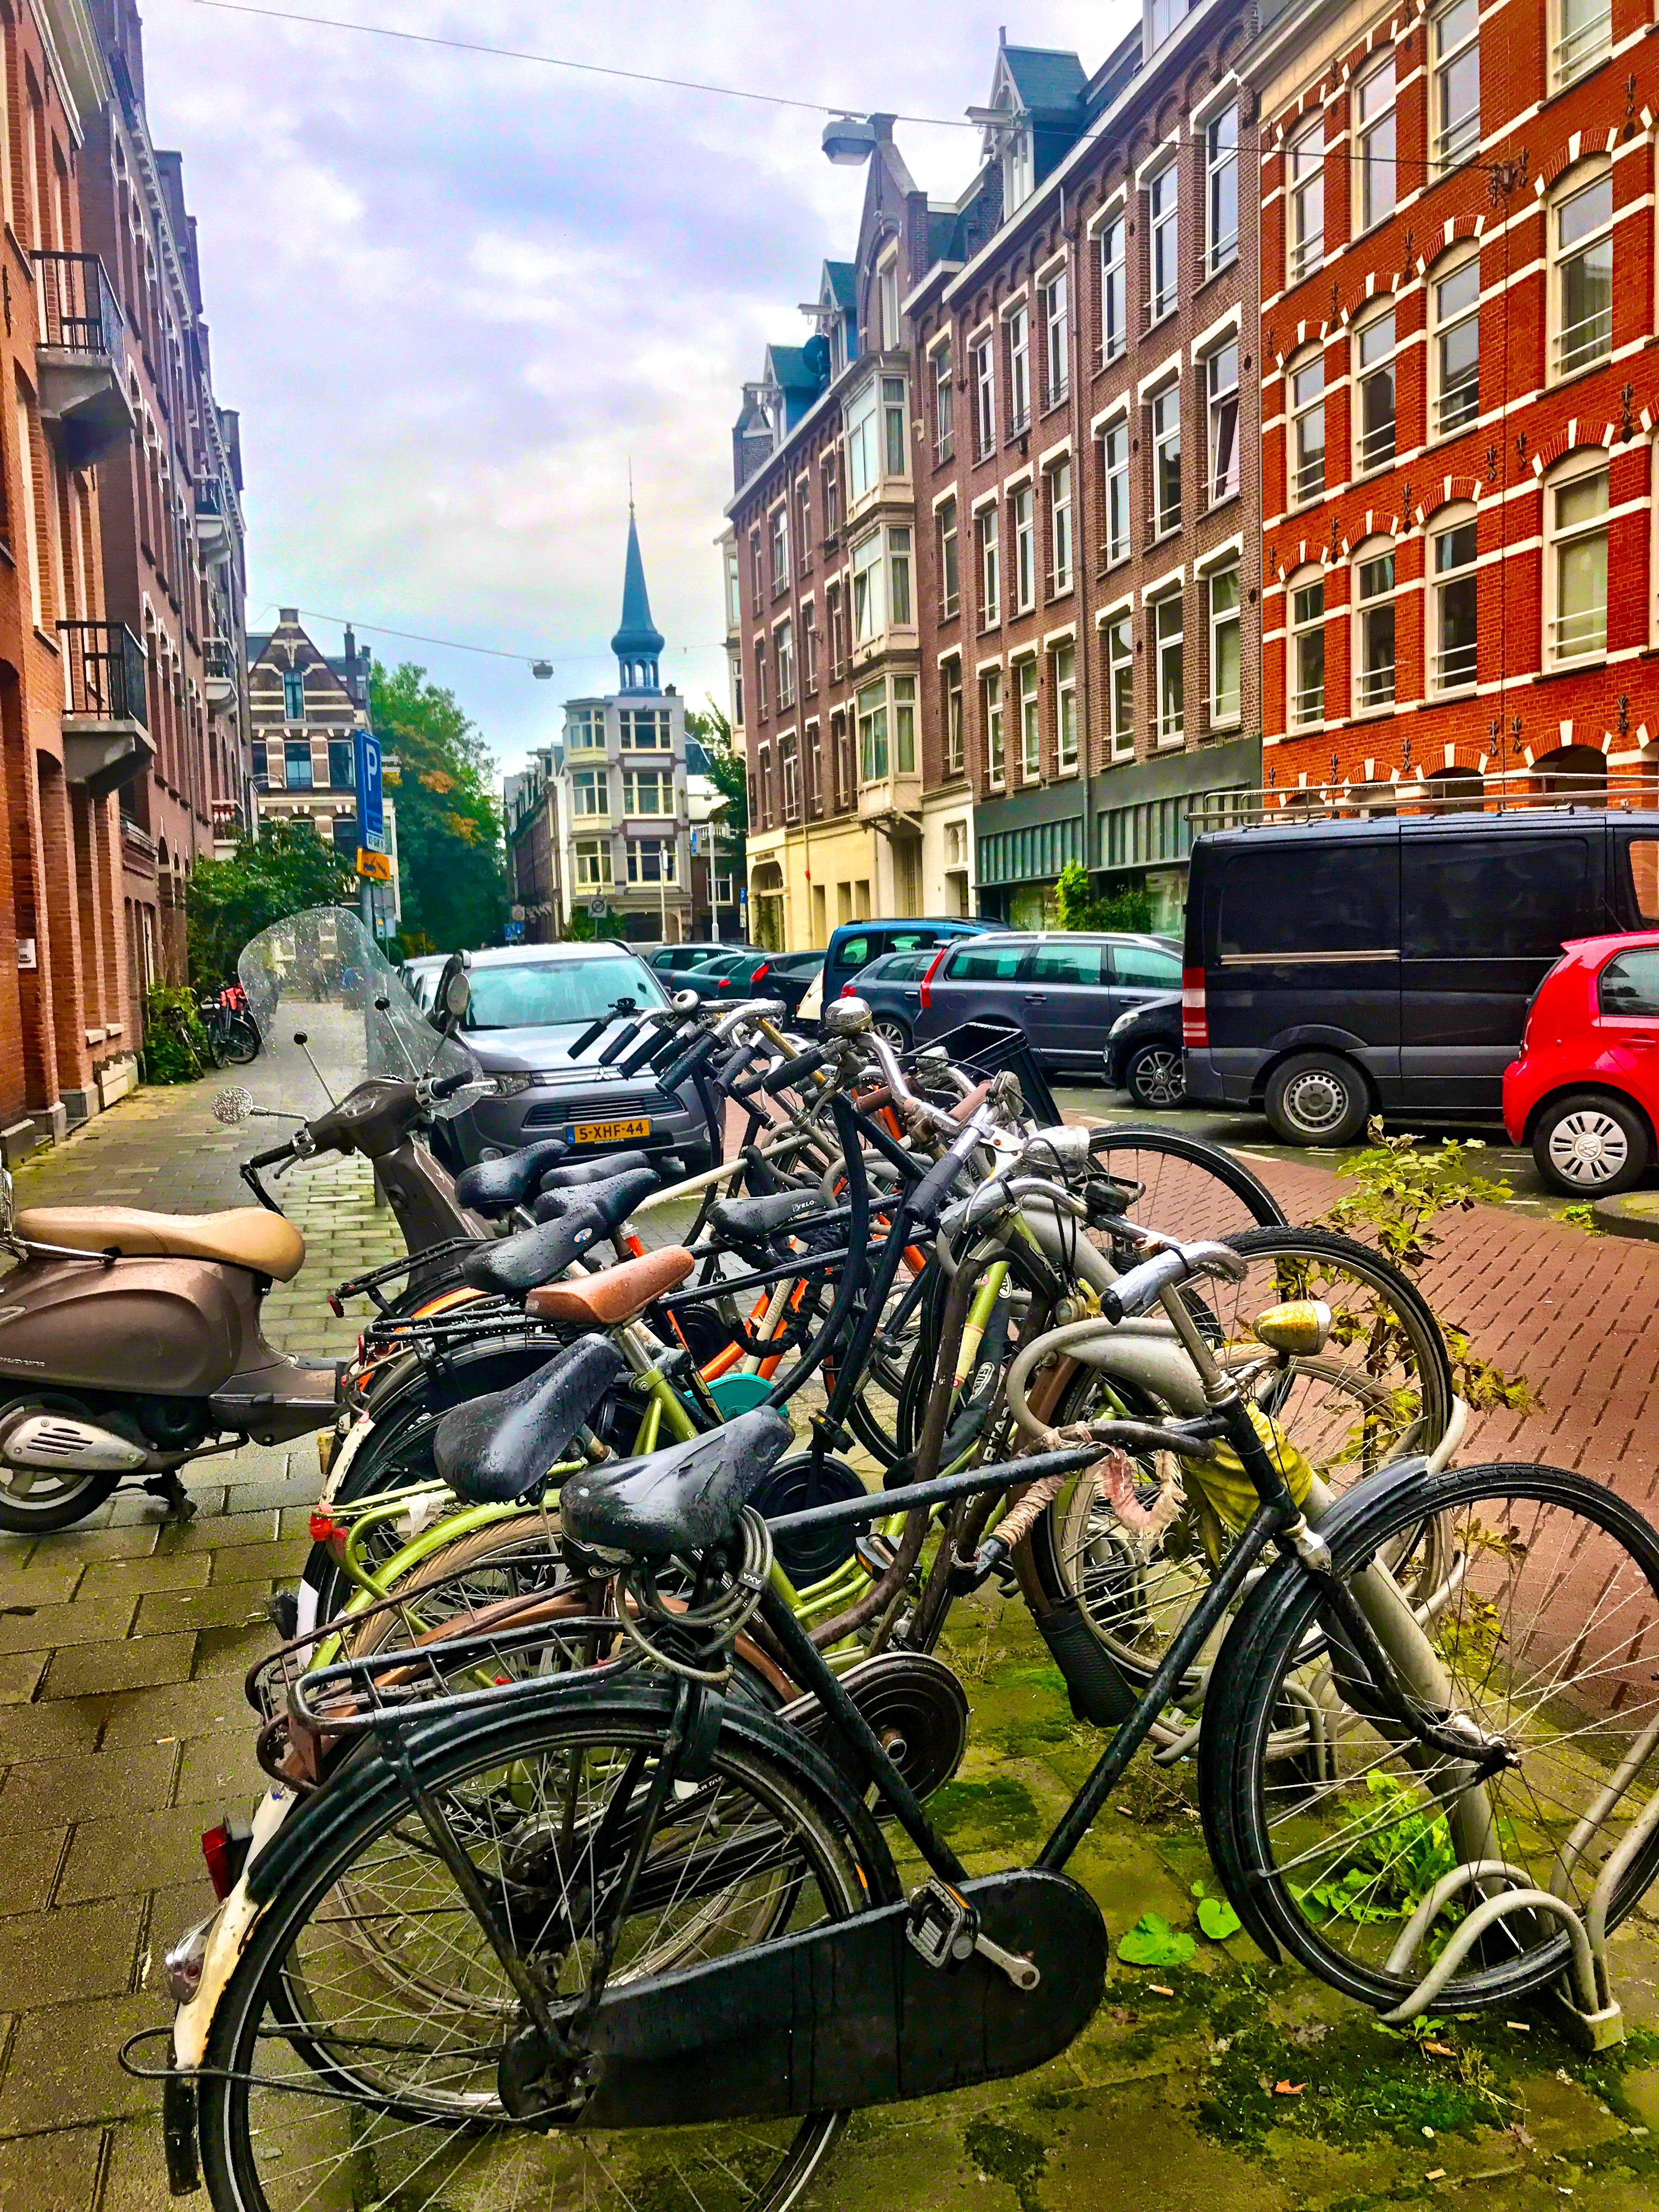 Exploring Amsterdam, Netherlands on bikes is the BEST way to see the city!